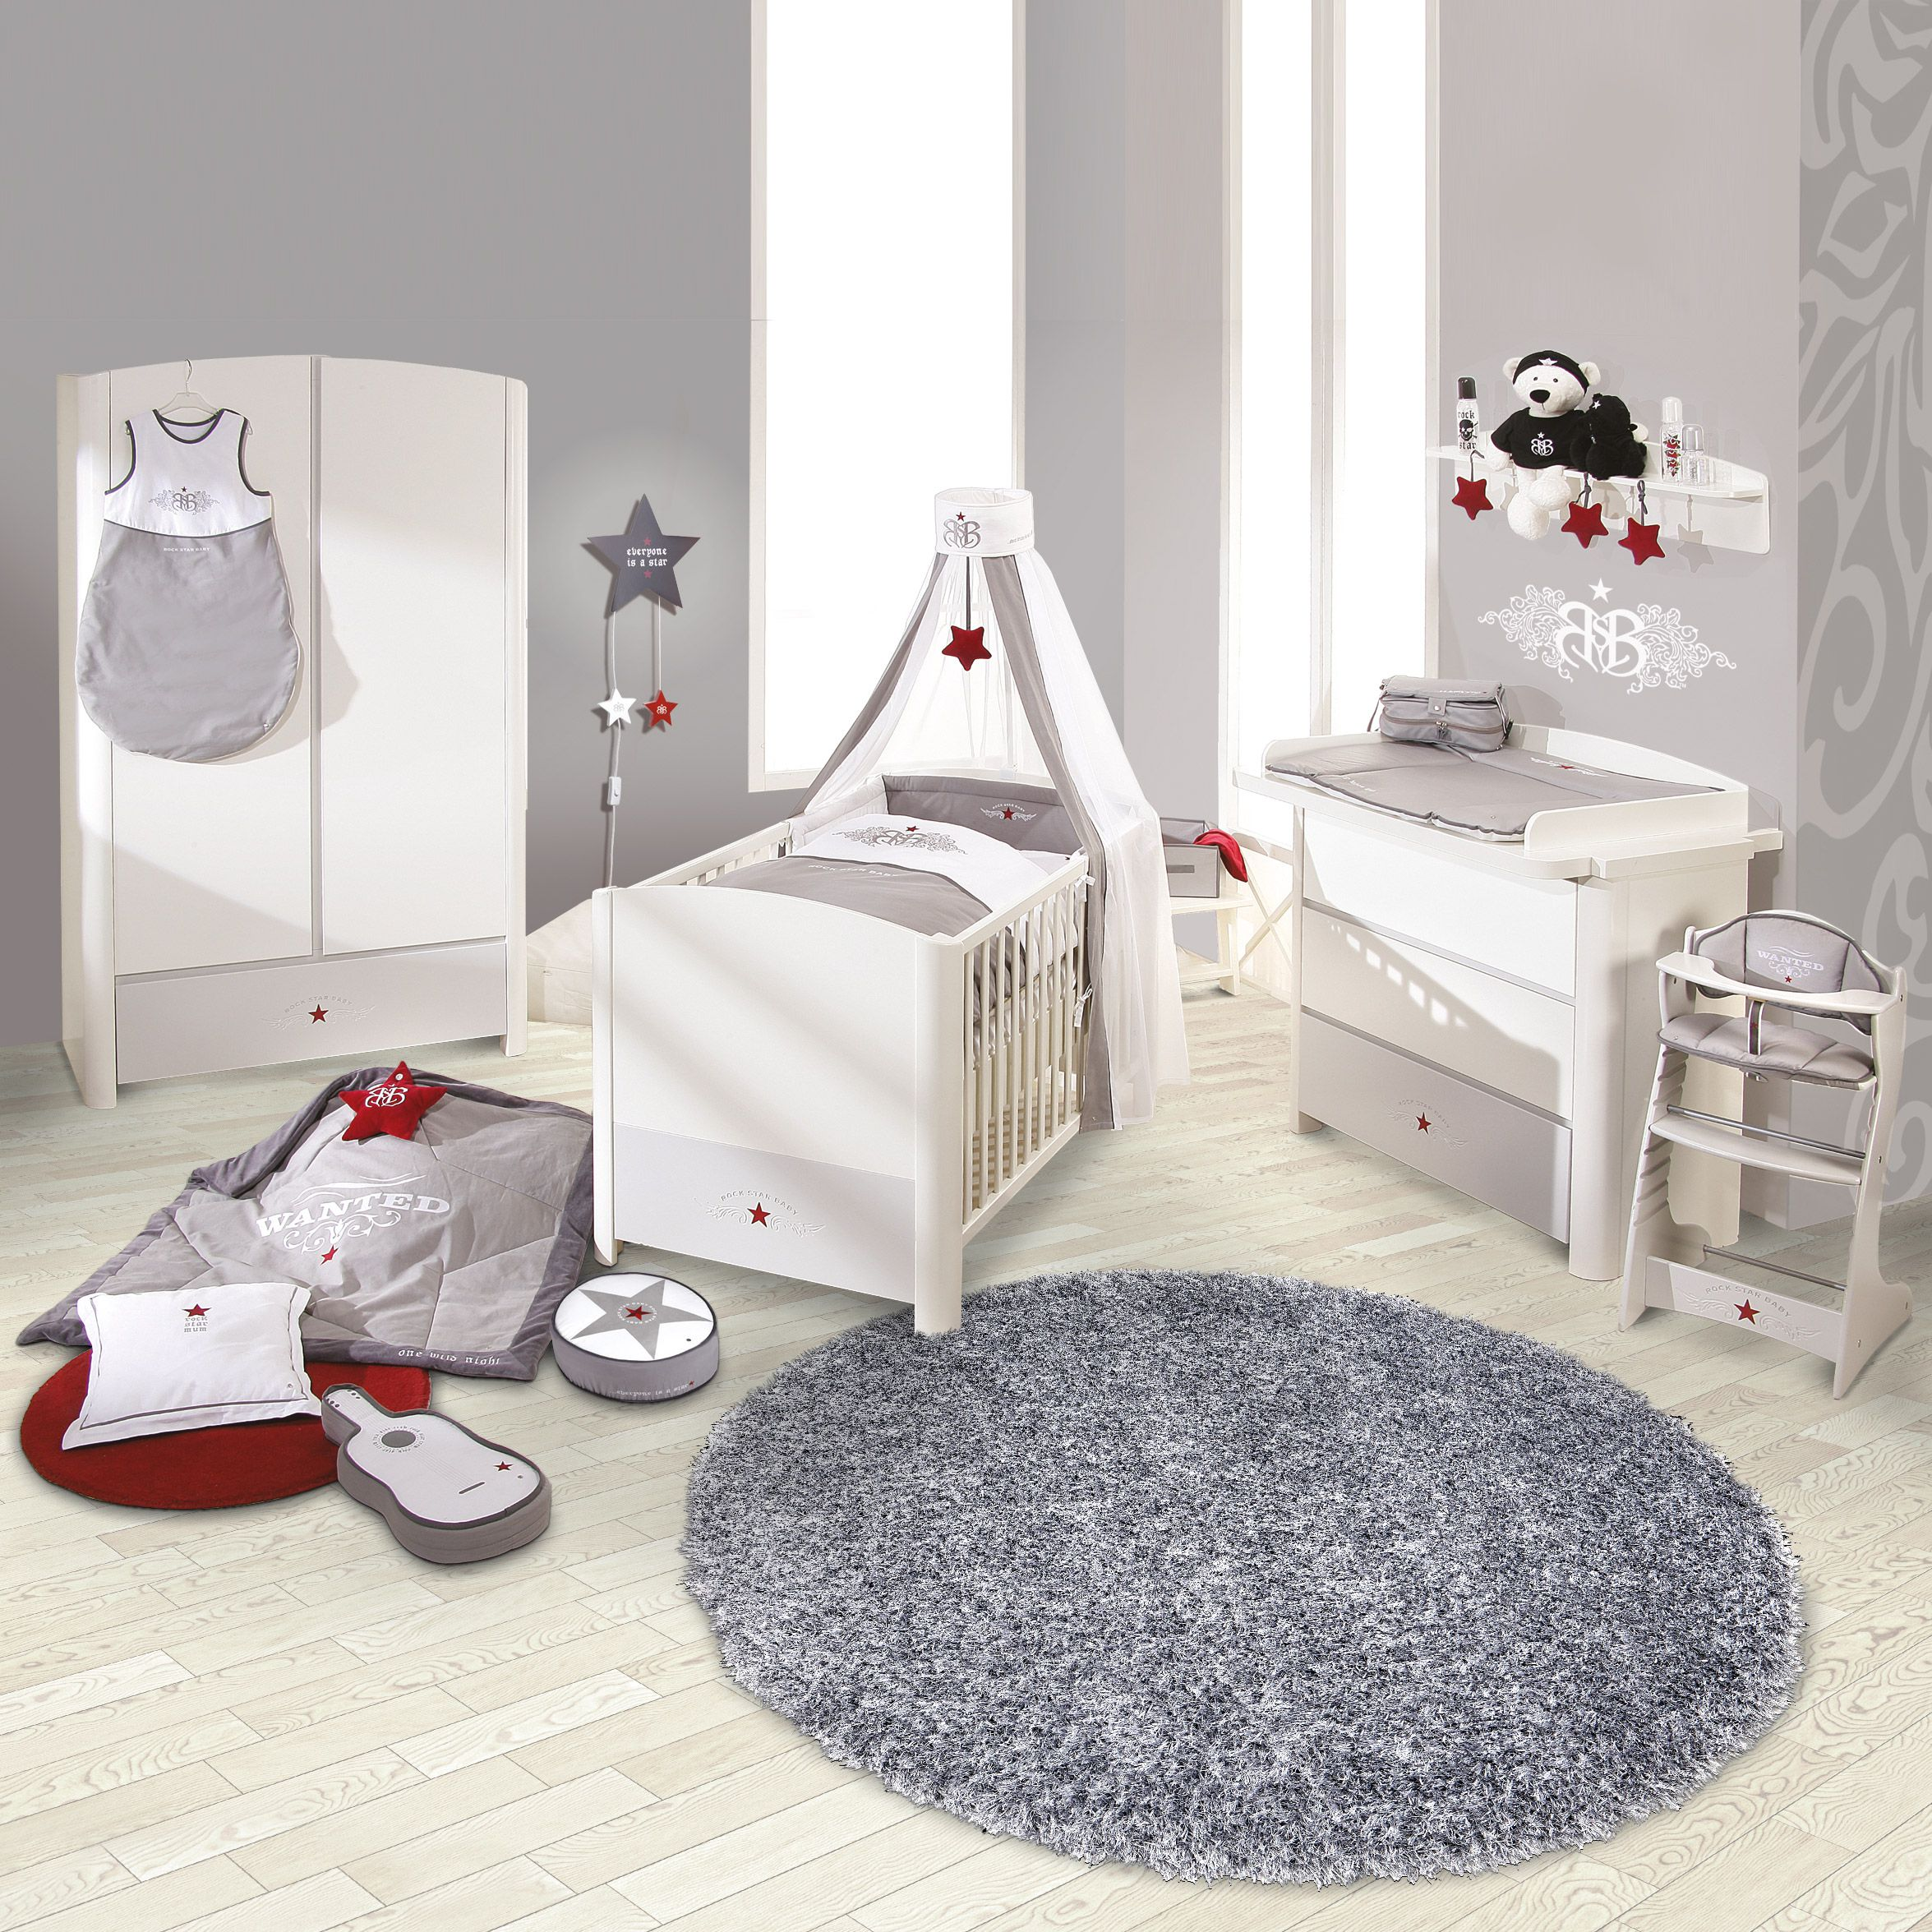 komplettset rock star 3 teilig babybett. Black Bedroom Furniture Sets. Home Design Ideas